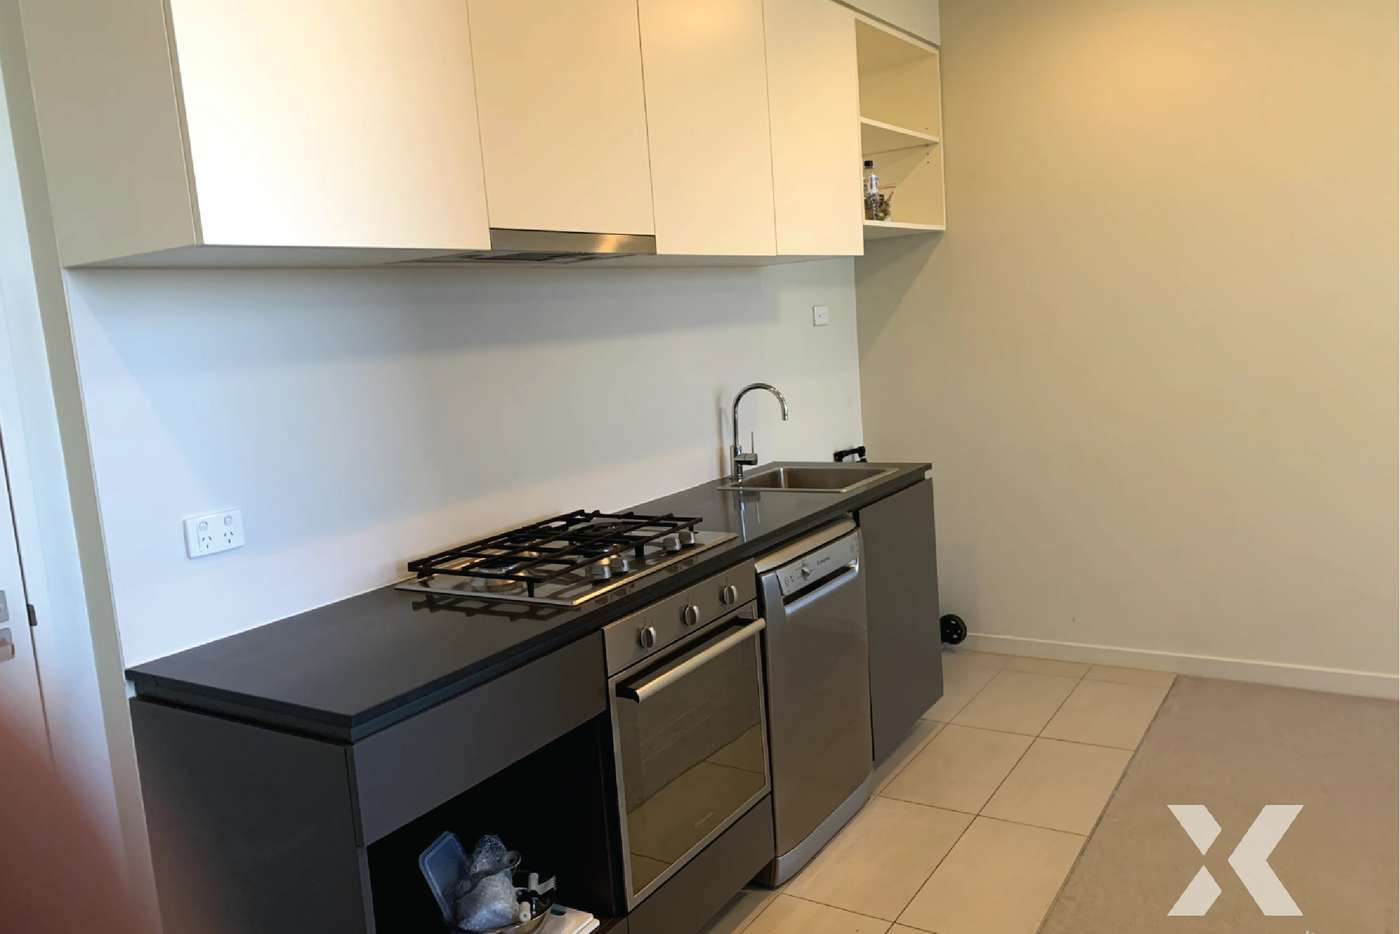 Sixth view of Homely apartment listing, 4401/568 Collins Street, Melbourne VIC 3000